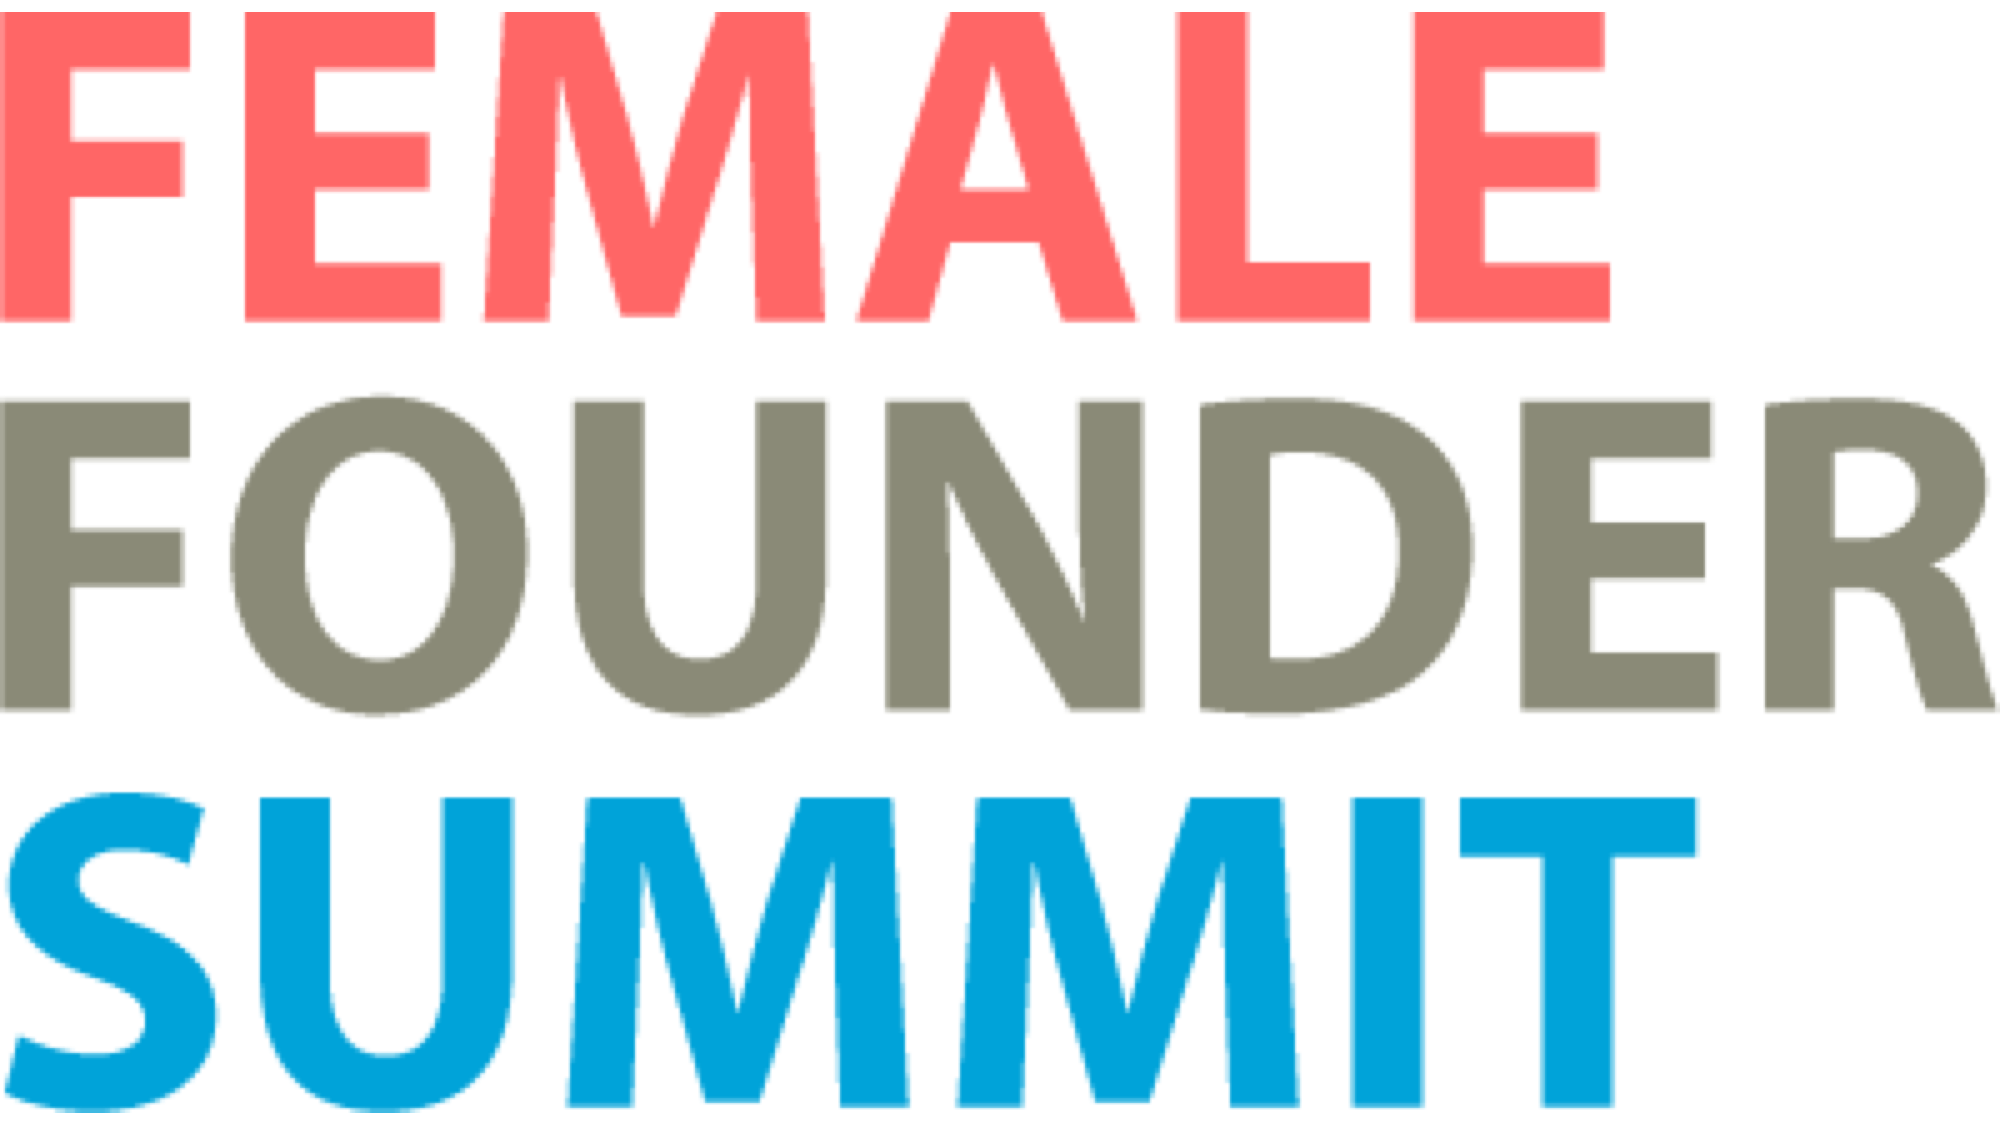 Female Founder Summit